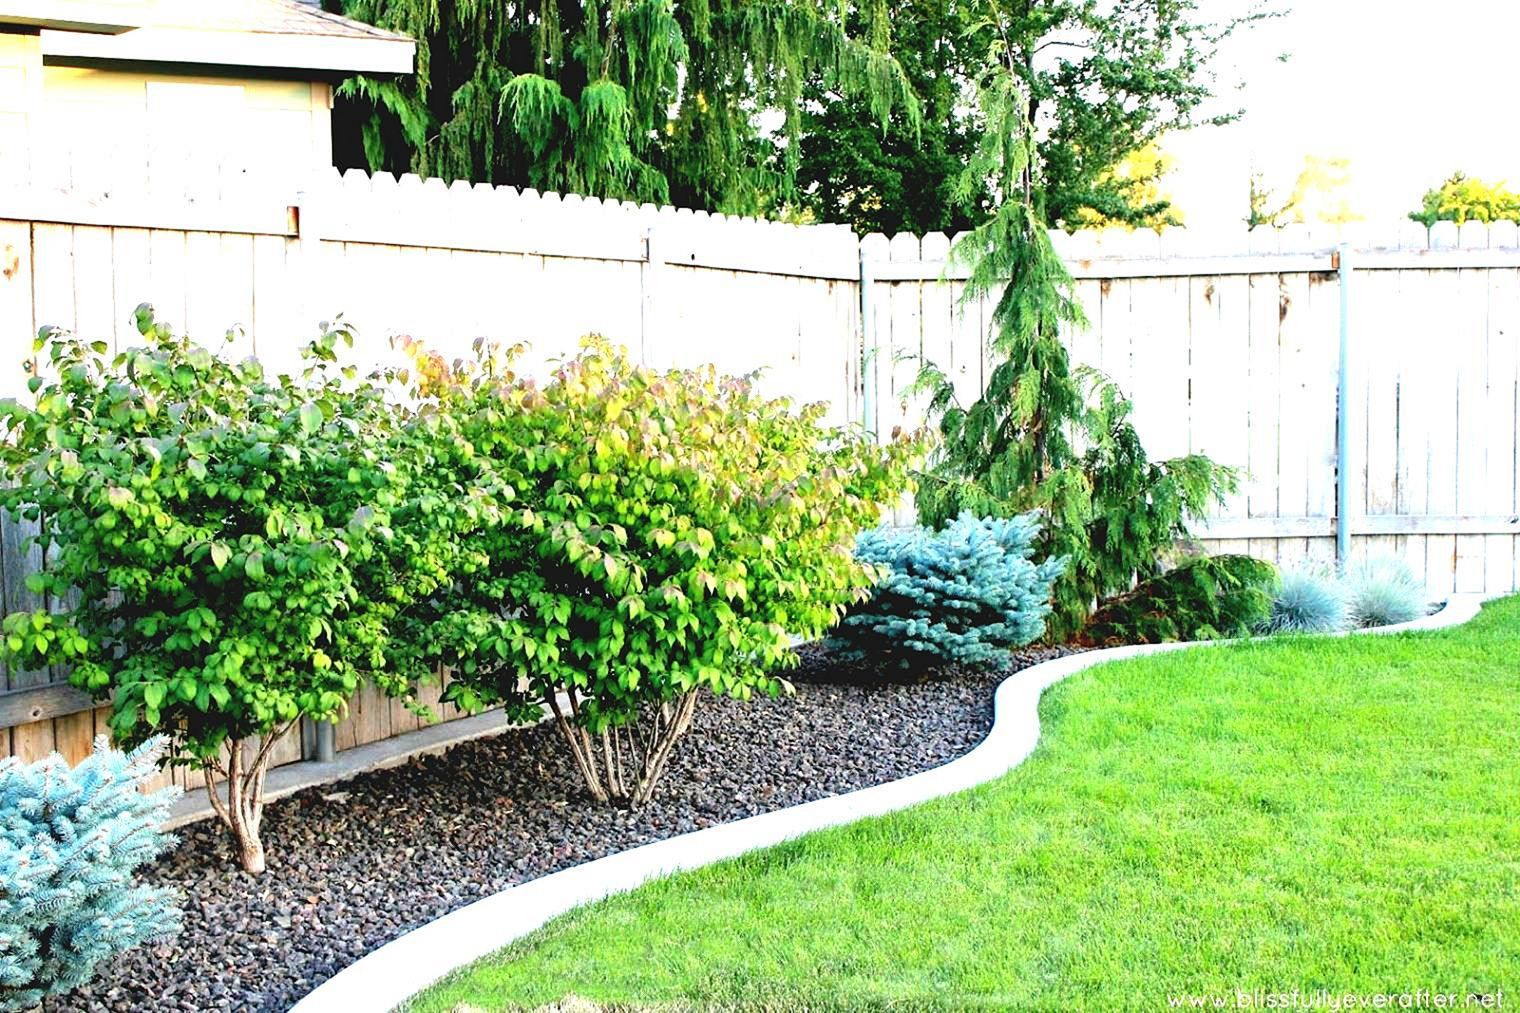 24 Marvelous Simple Backyard Landscaping Ideas On A Budget Plants inside 11 Clever Designs of How to Build Simple Backyard Ideas For Small Yards